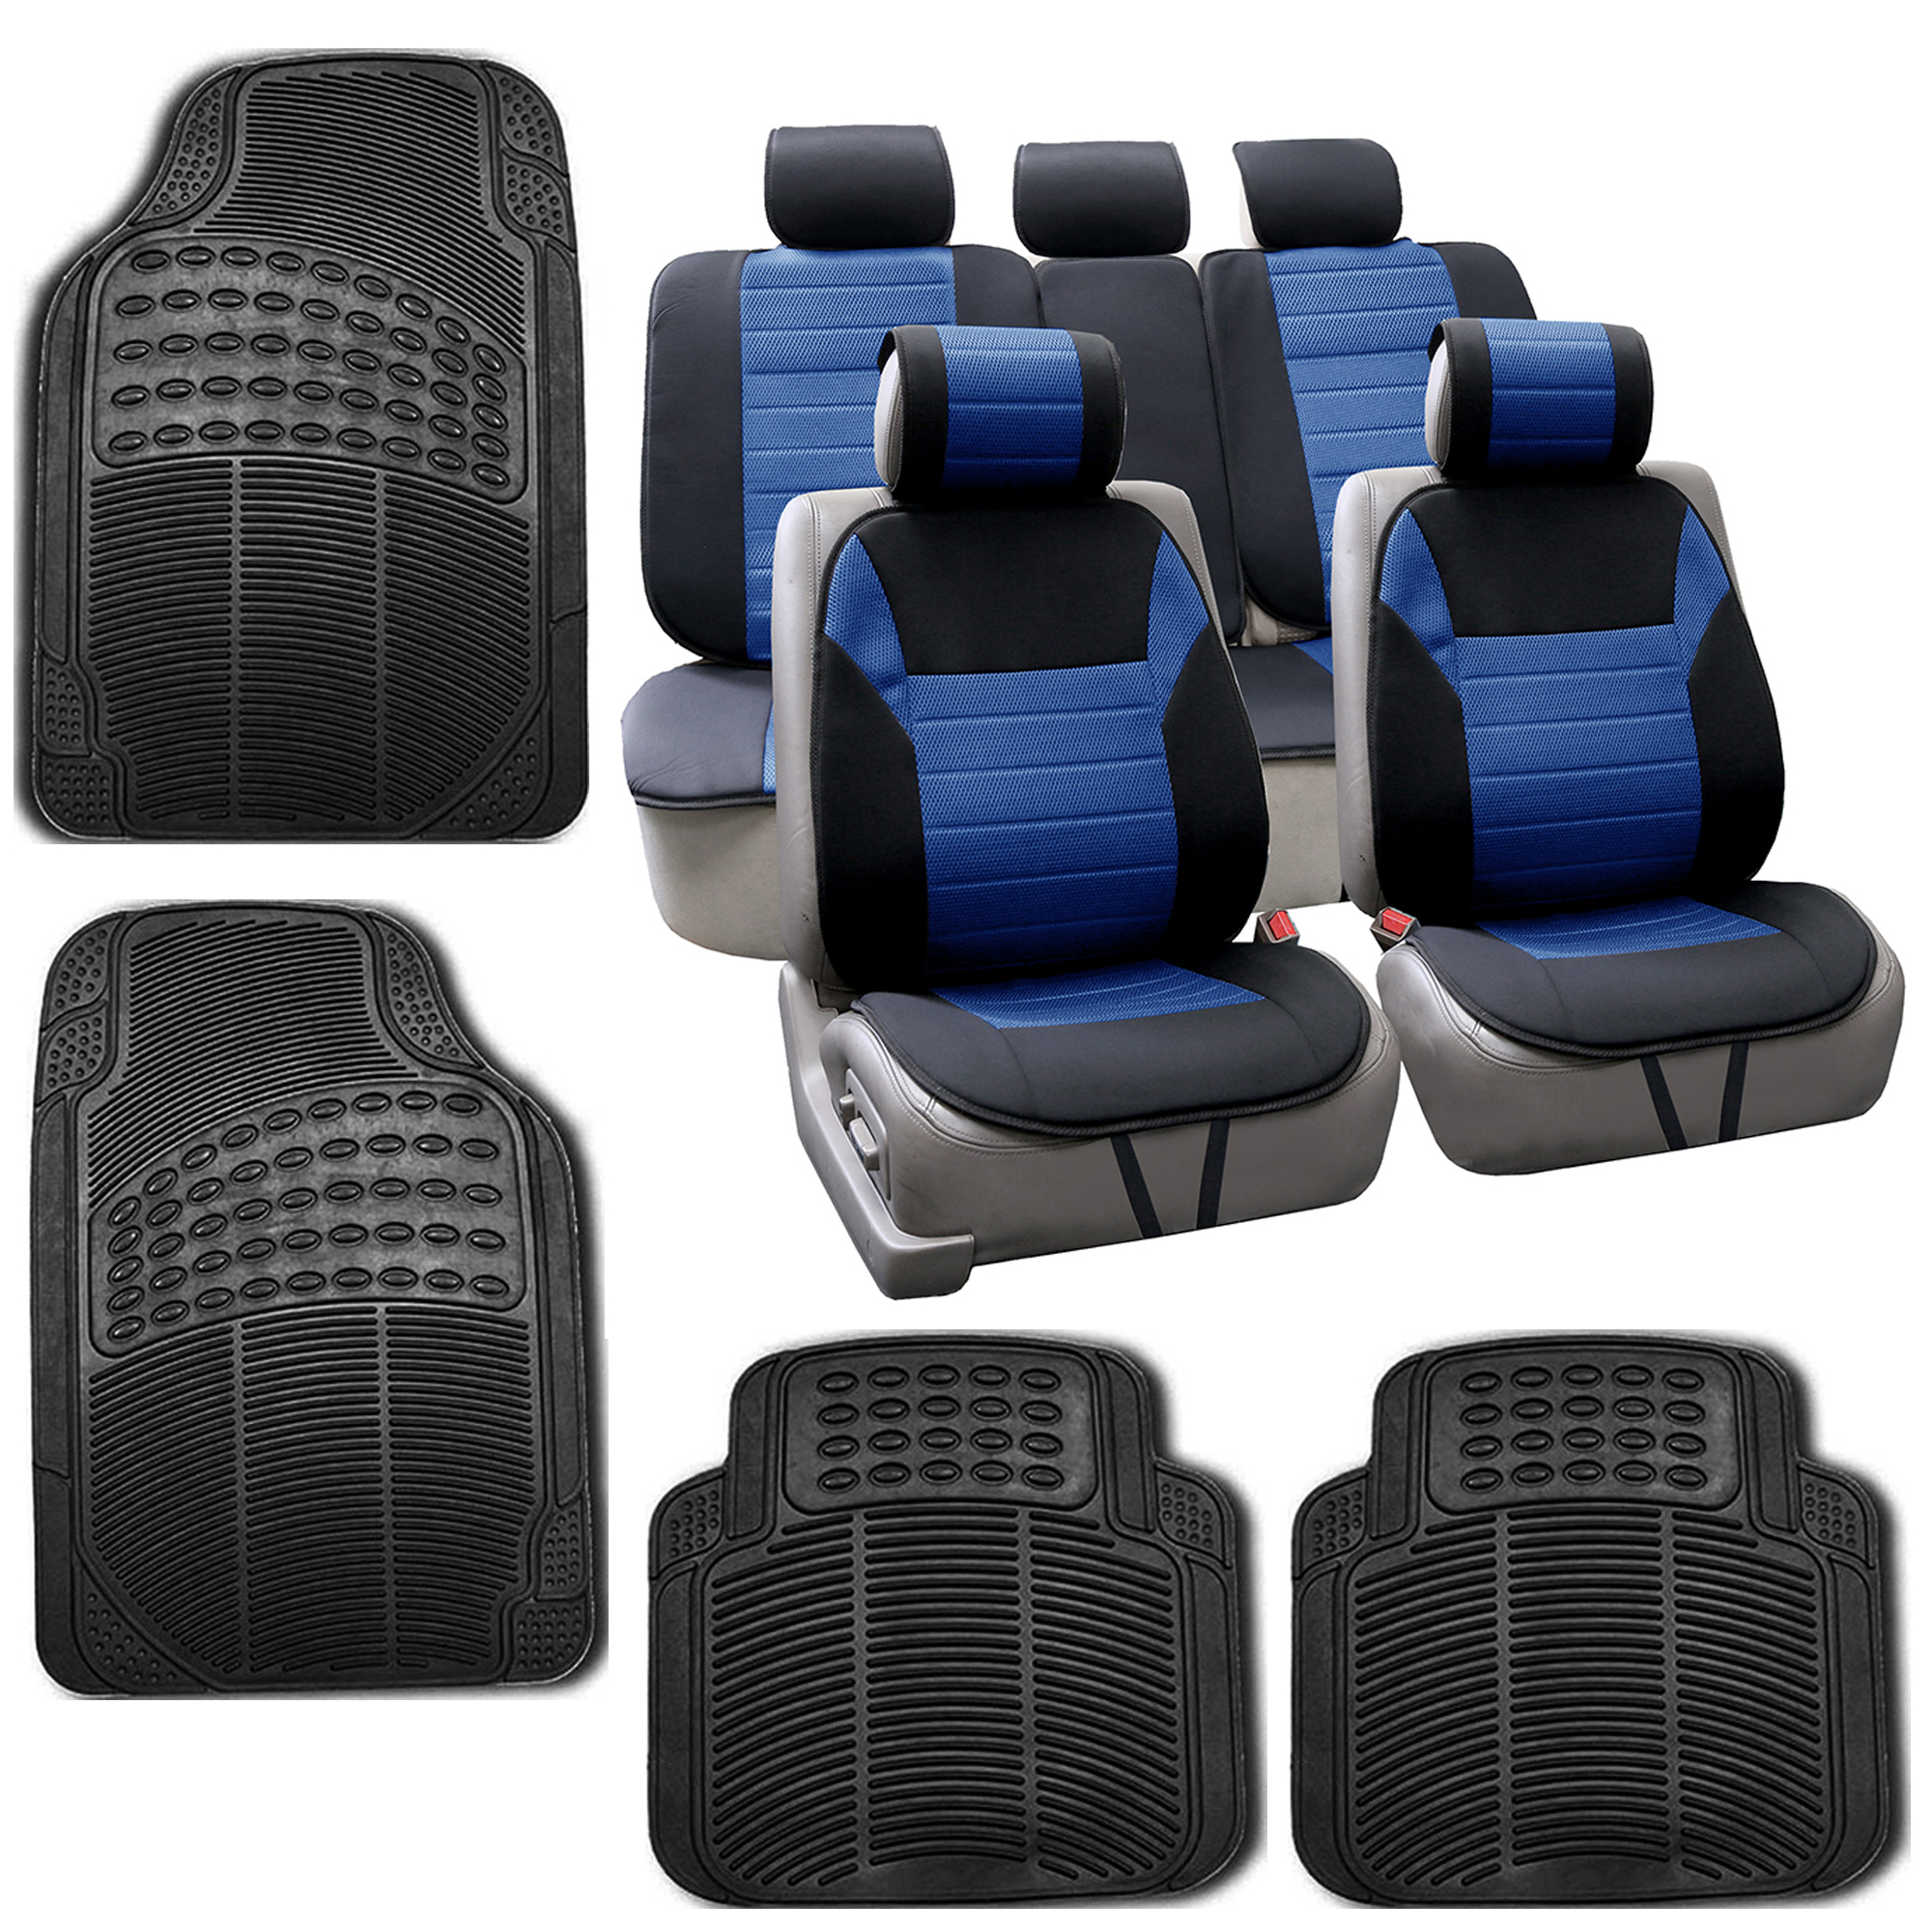 Car Seat Covers High Quality Car Seat Cushion Pads Rubber